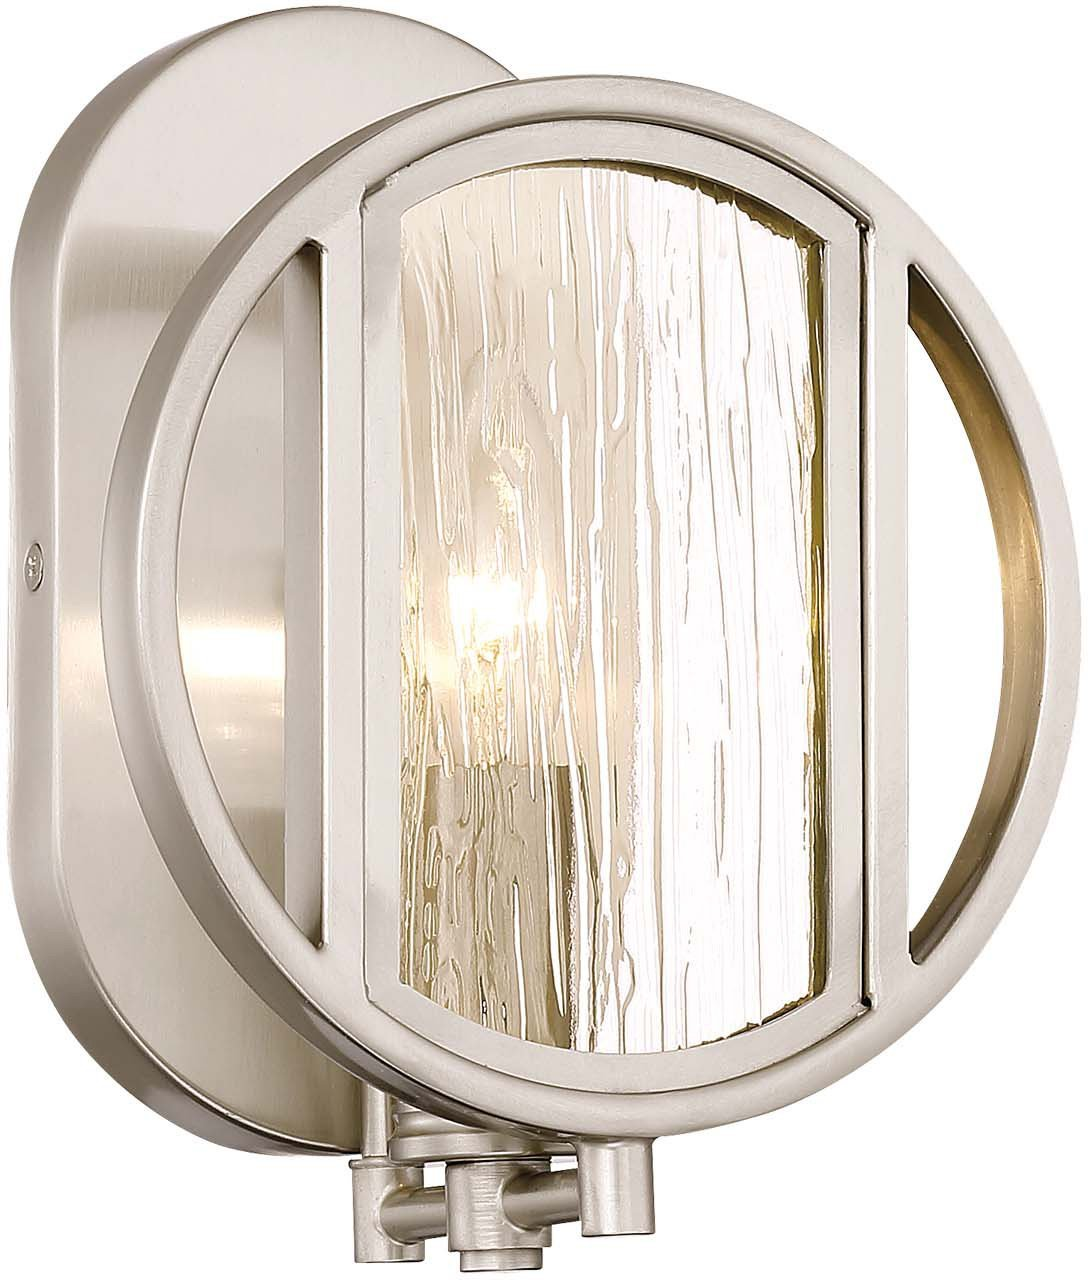 Minka Lavery Wall Sconce Lighting 3061-84 Via Capri Wall Lamp Fixture, 1-Light 60 Watts, Brushed Nickel